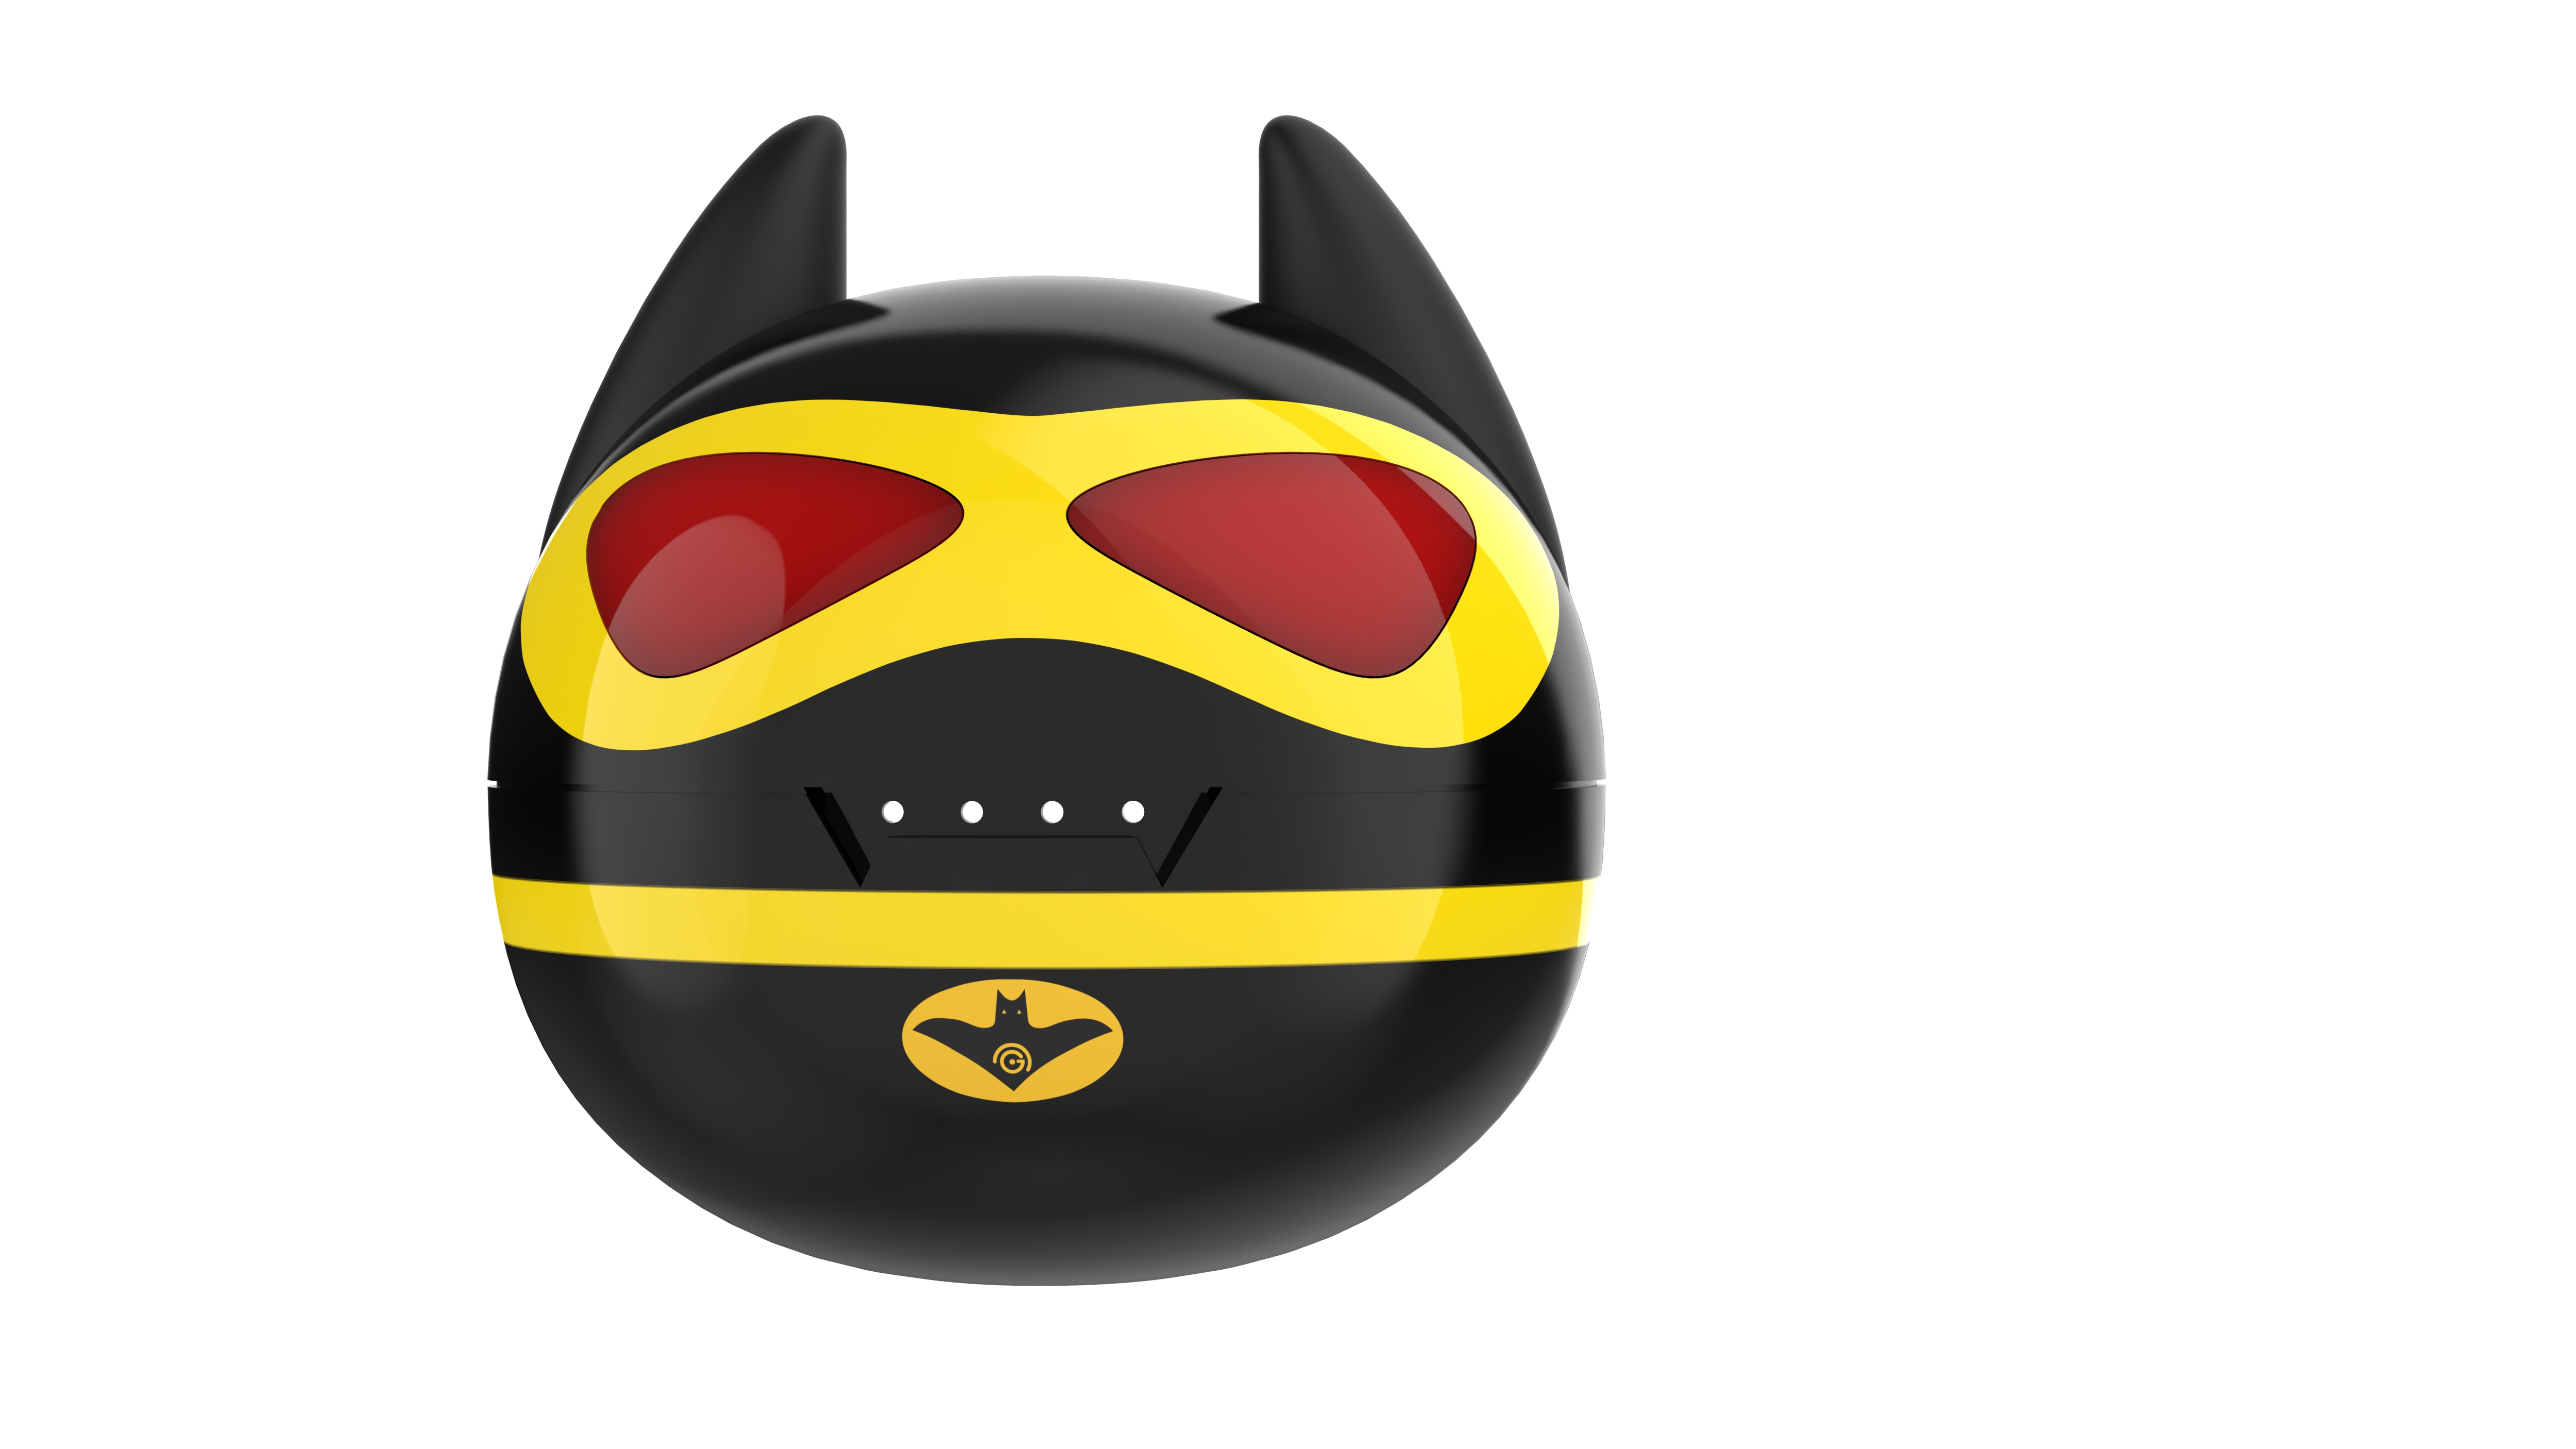 BatMan TWS earpods with Bluetooth 5.0